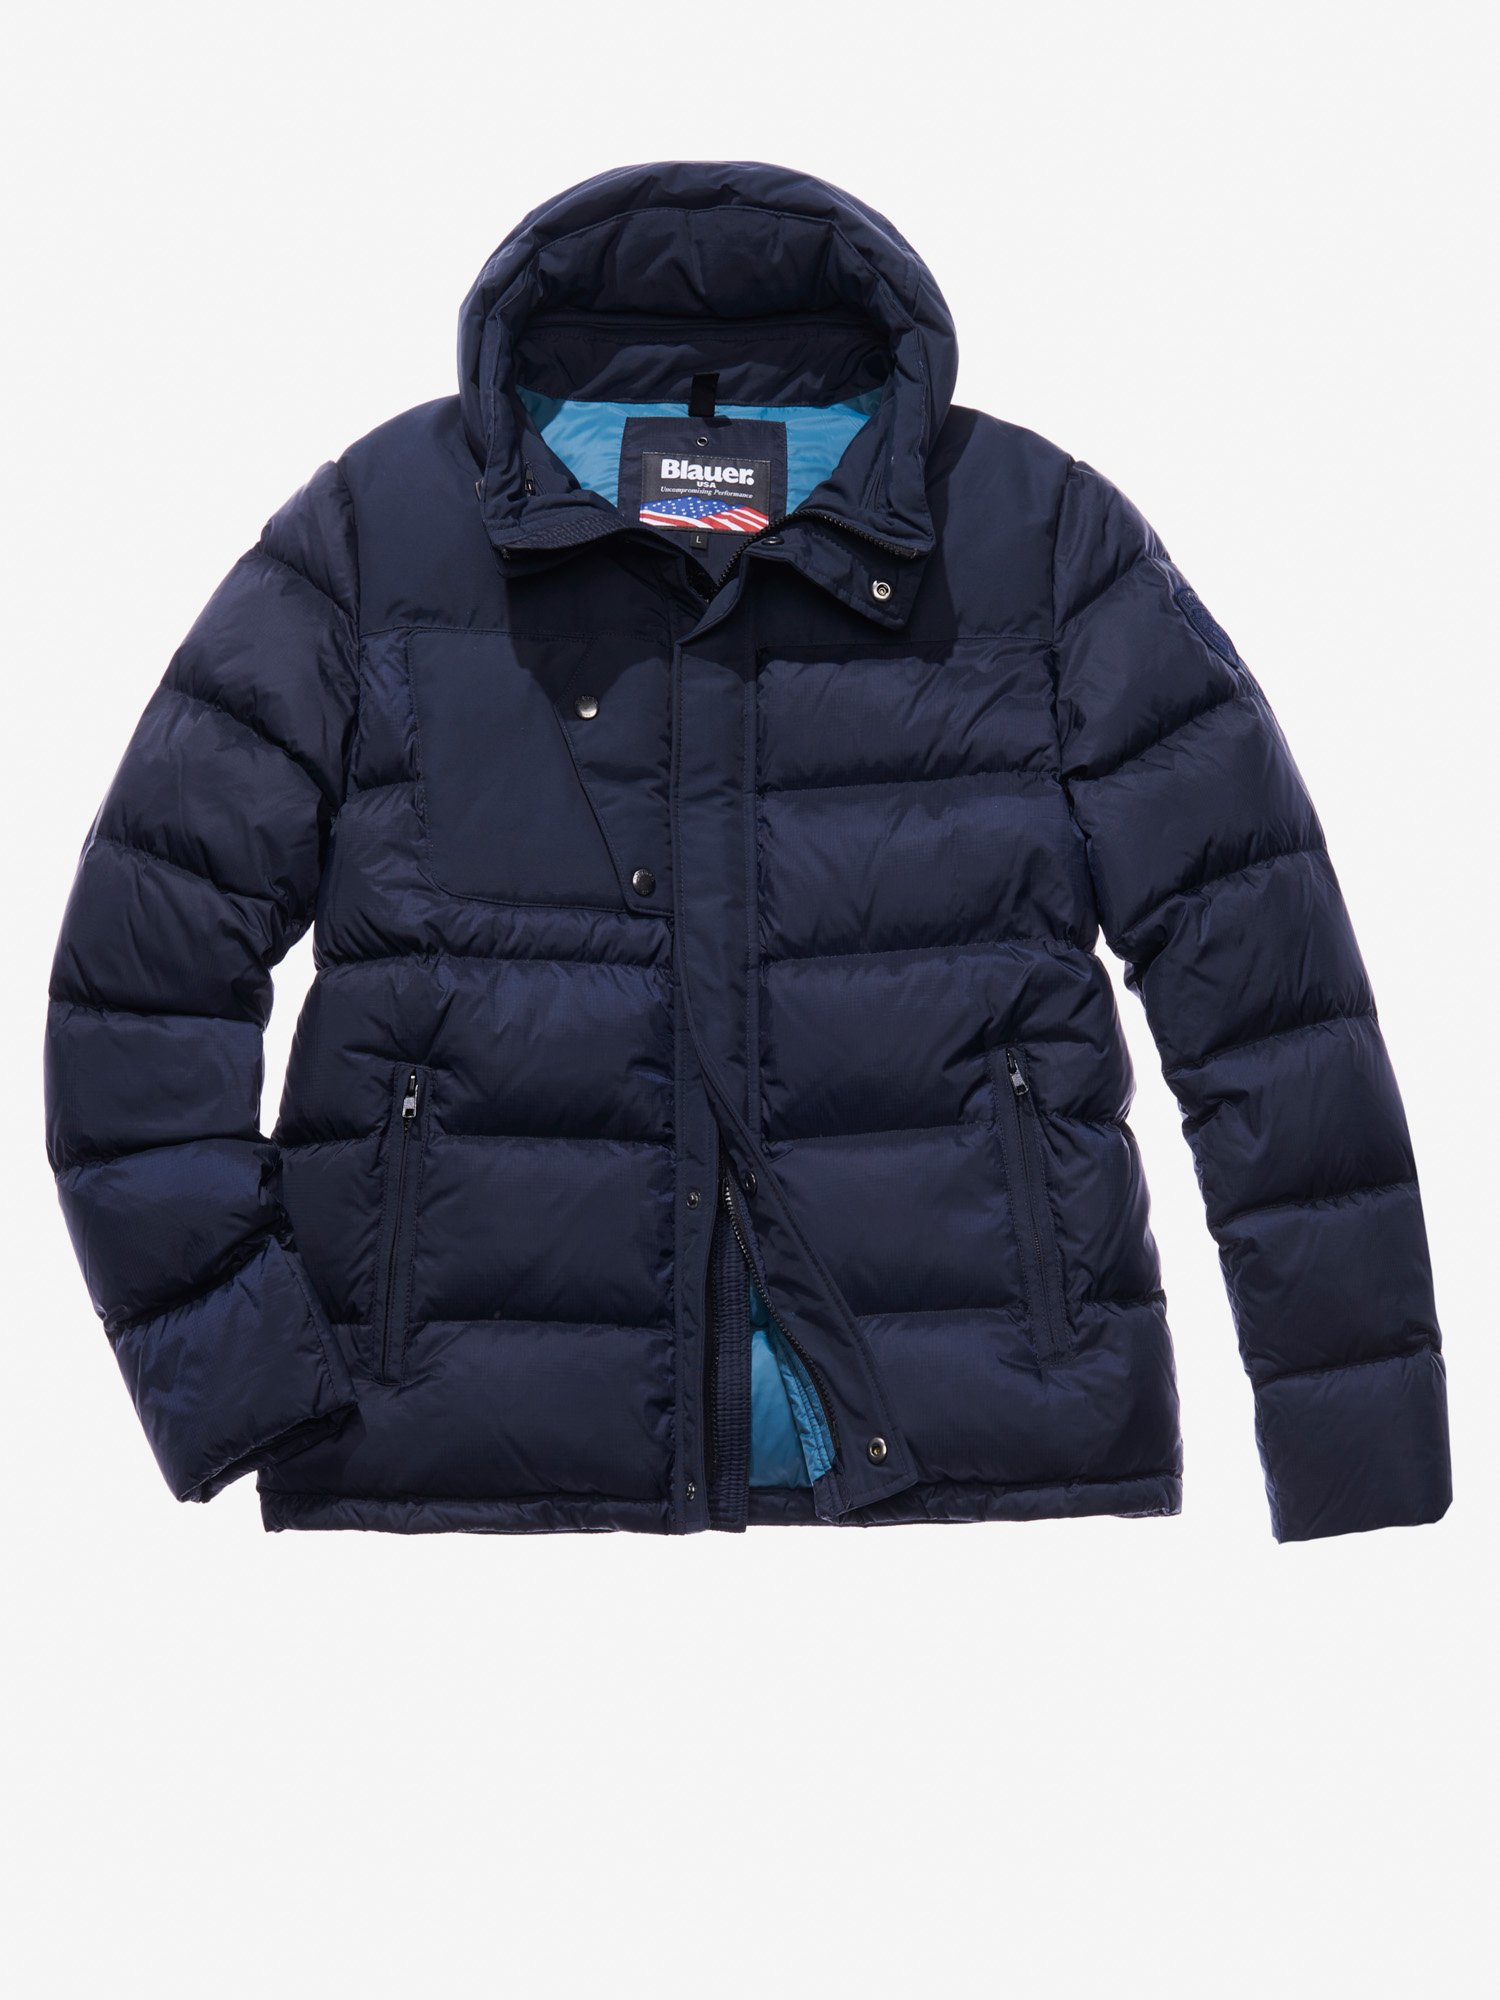 CHRISTIAN COTTON AND NYLON DOWN JACKET - Blauer